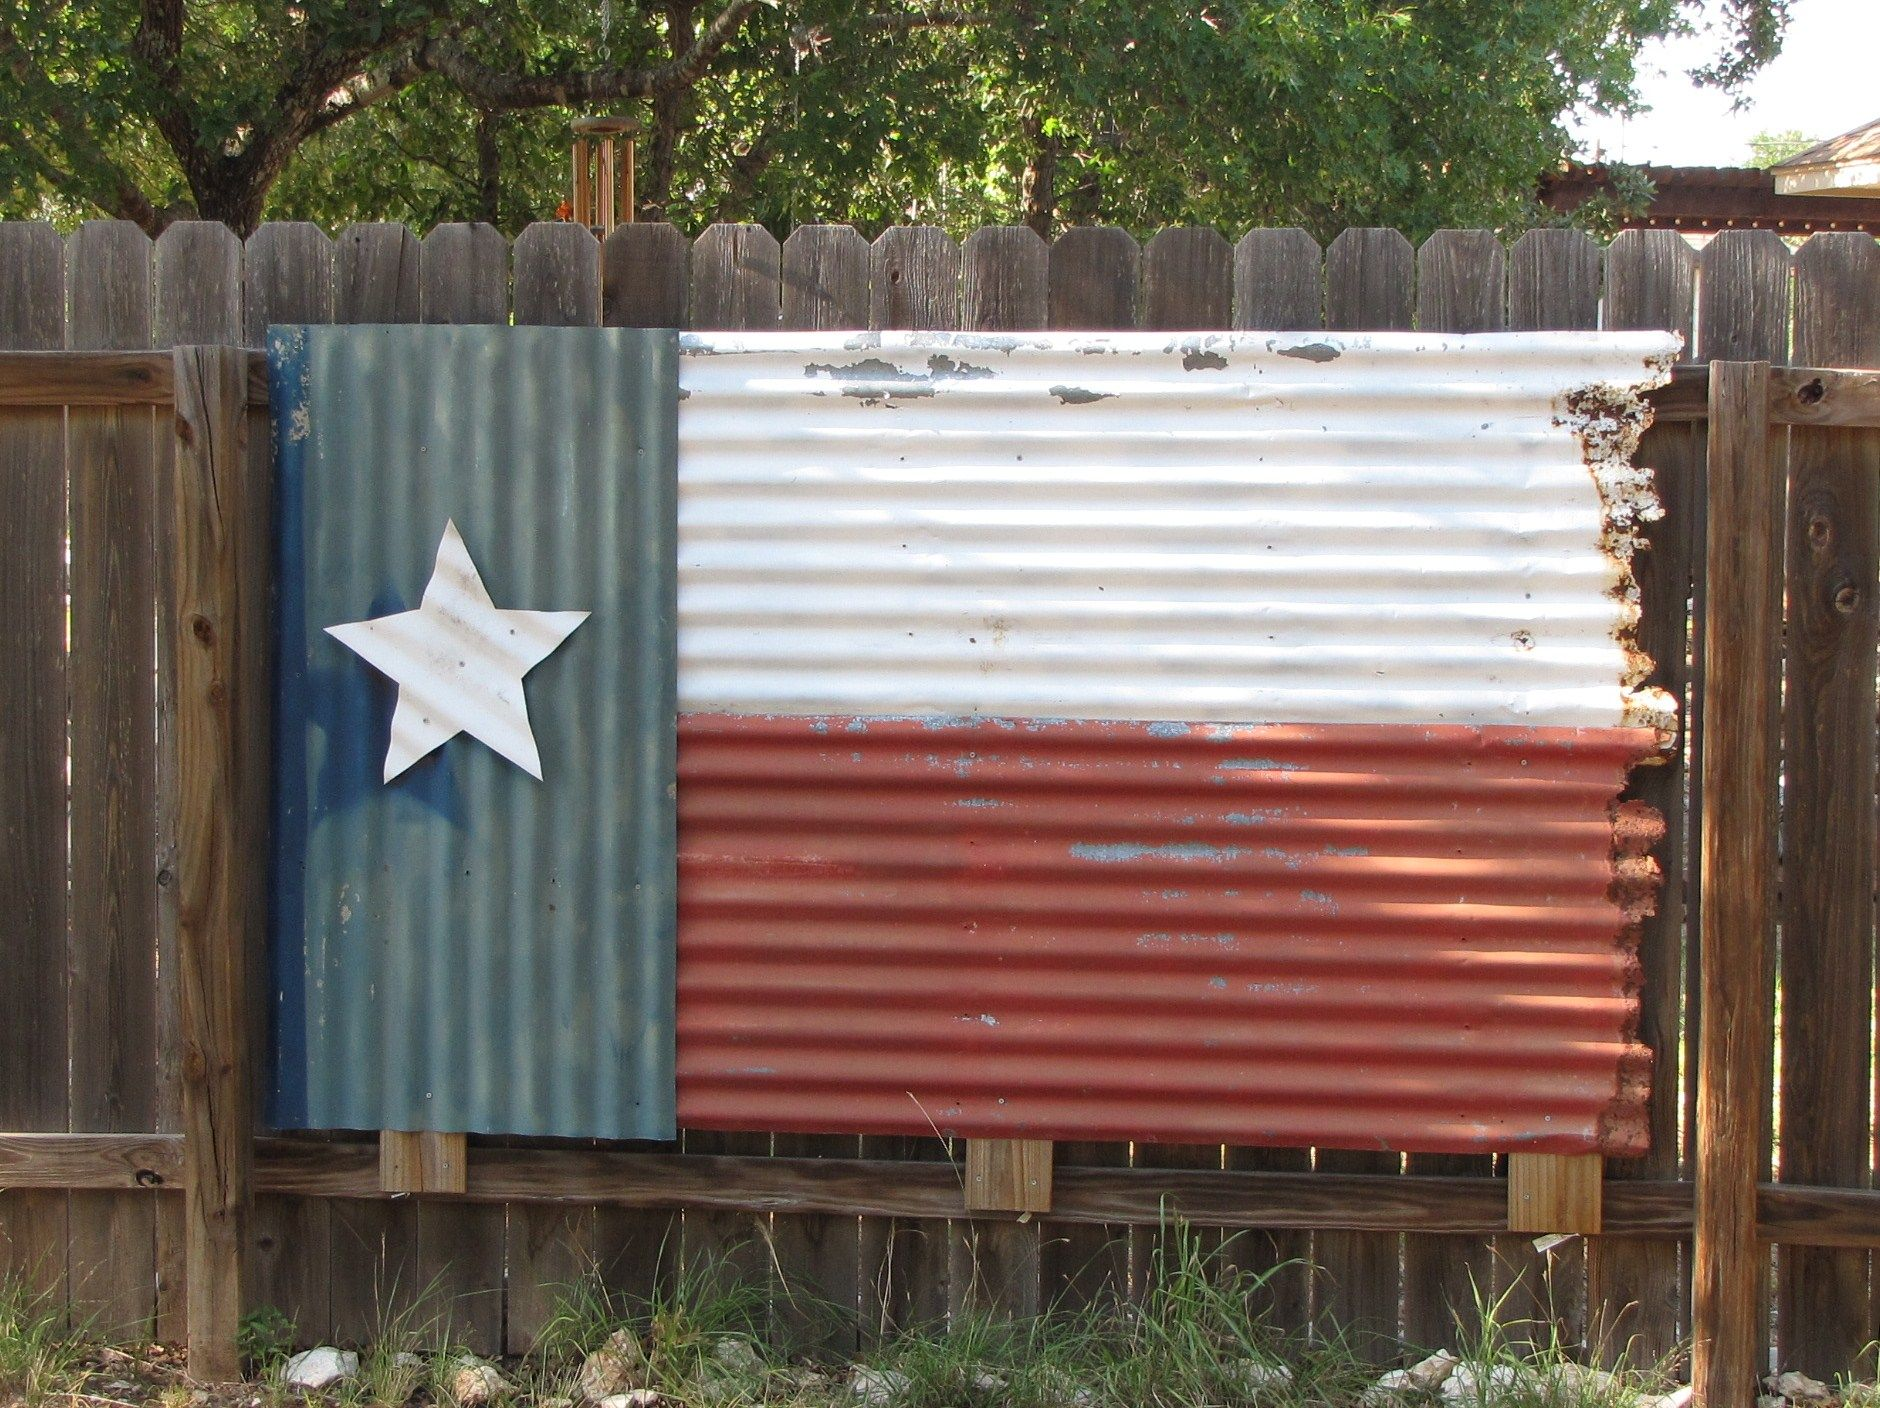 Painted Corrugated Roofing I Am So Making This Only American Flag Instead Of Texas With Images Fence Design Metal Fence Backyard Fences